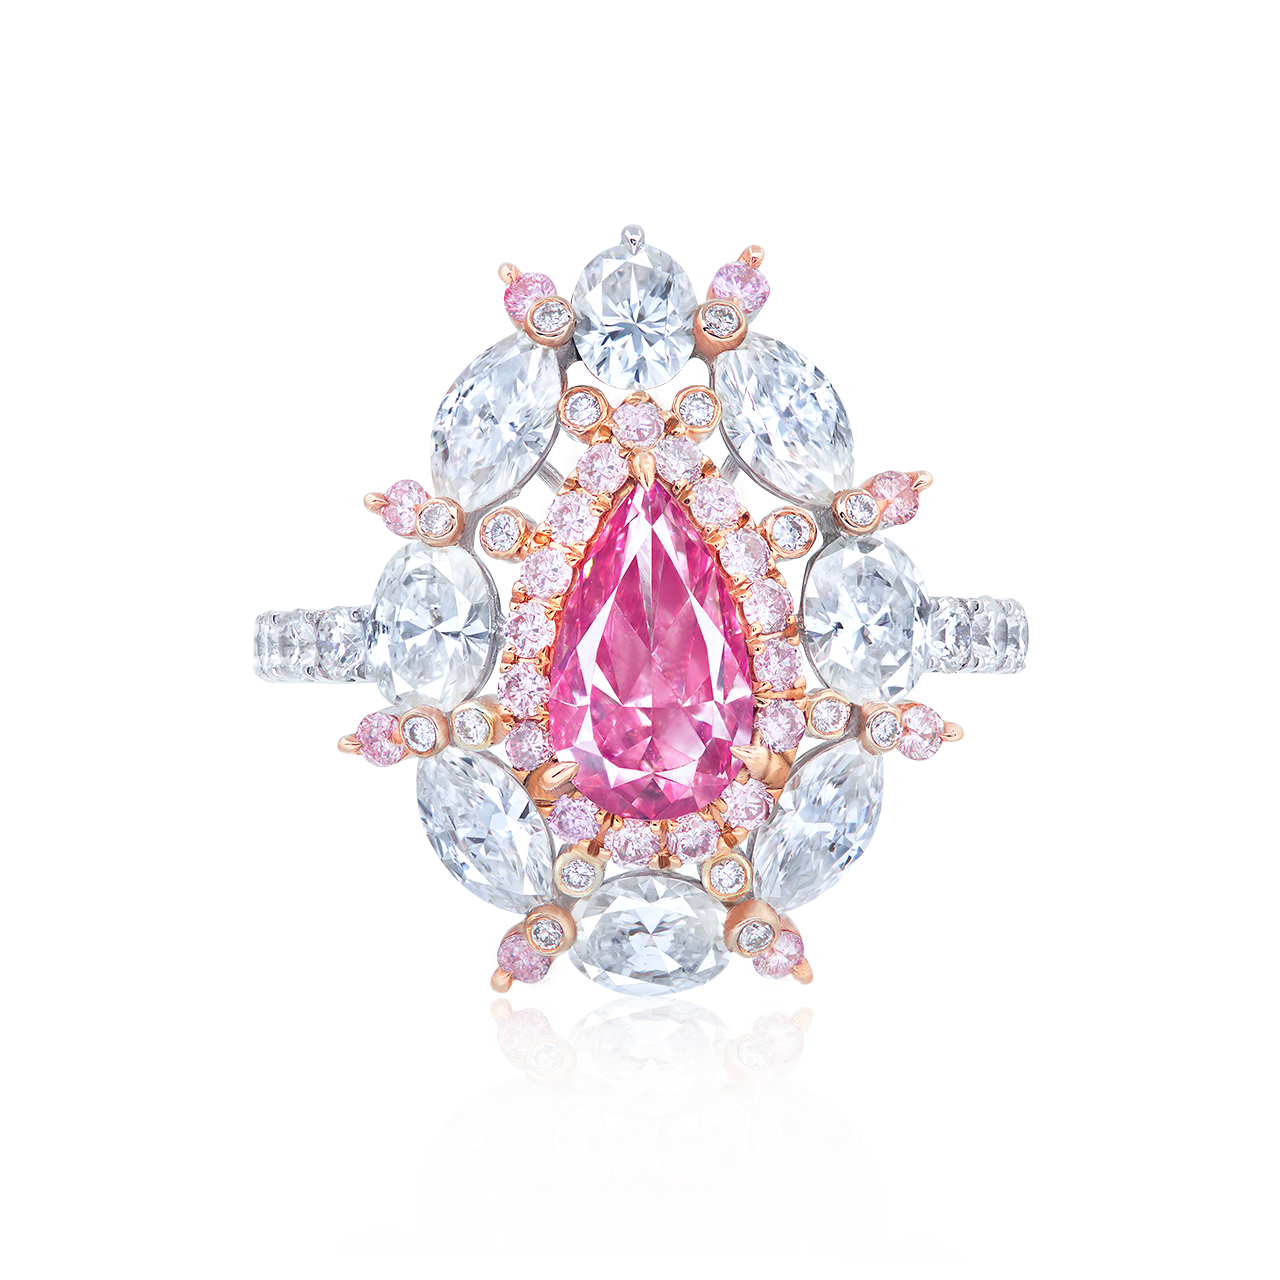 GIA 1.03克拉 艷彩紫粉鑽鑽石戒